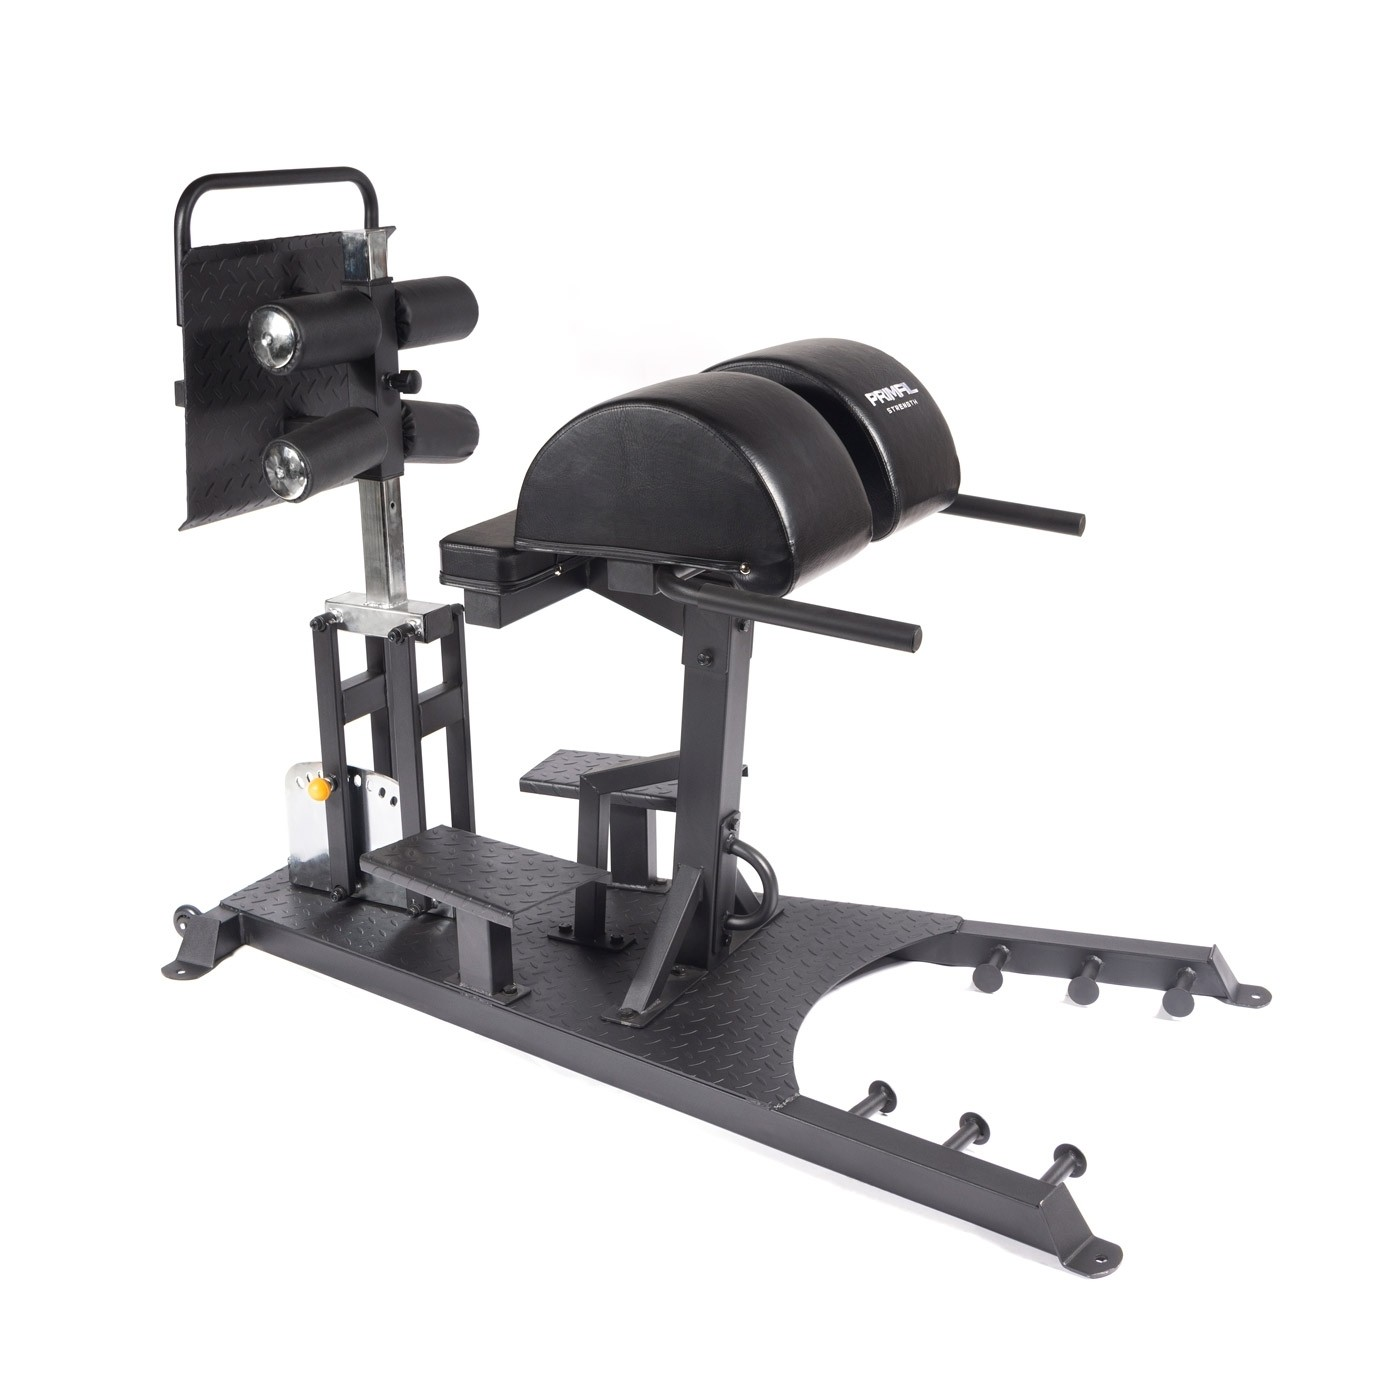 Primal Strength Monster Series Commercial Glute Ham Developer (GHD) - MID JUNE DELIVERY